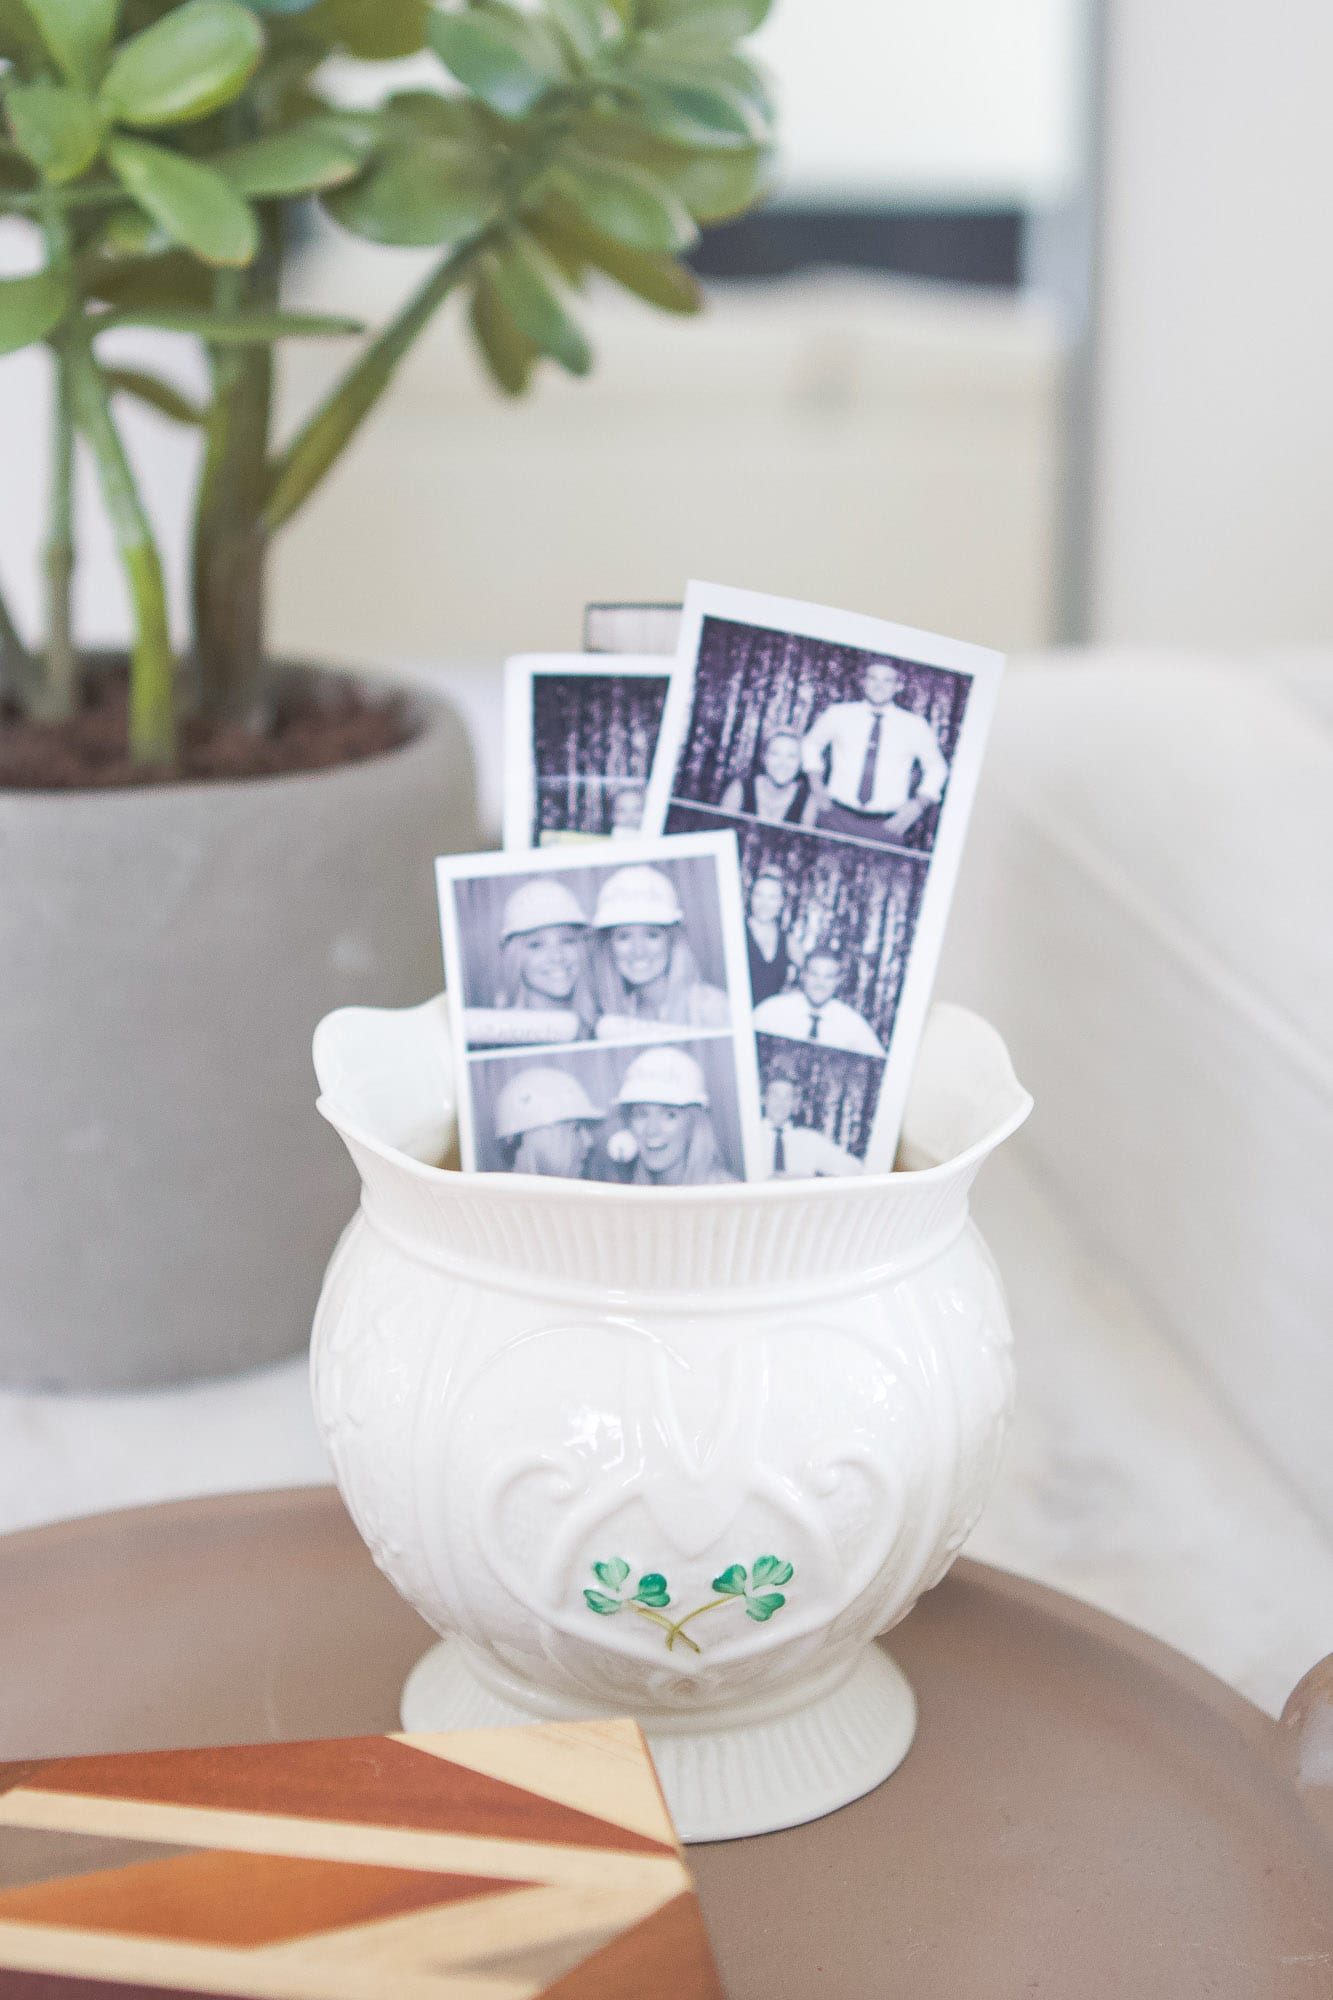 Vase with polaroid pictures